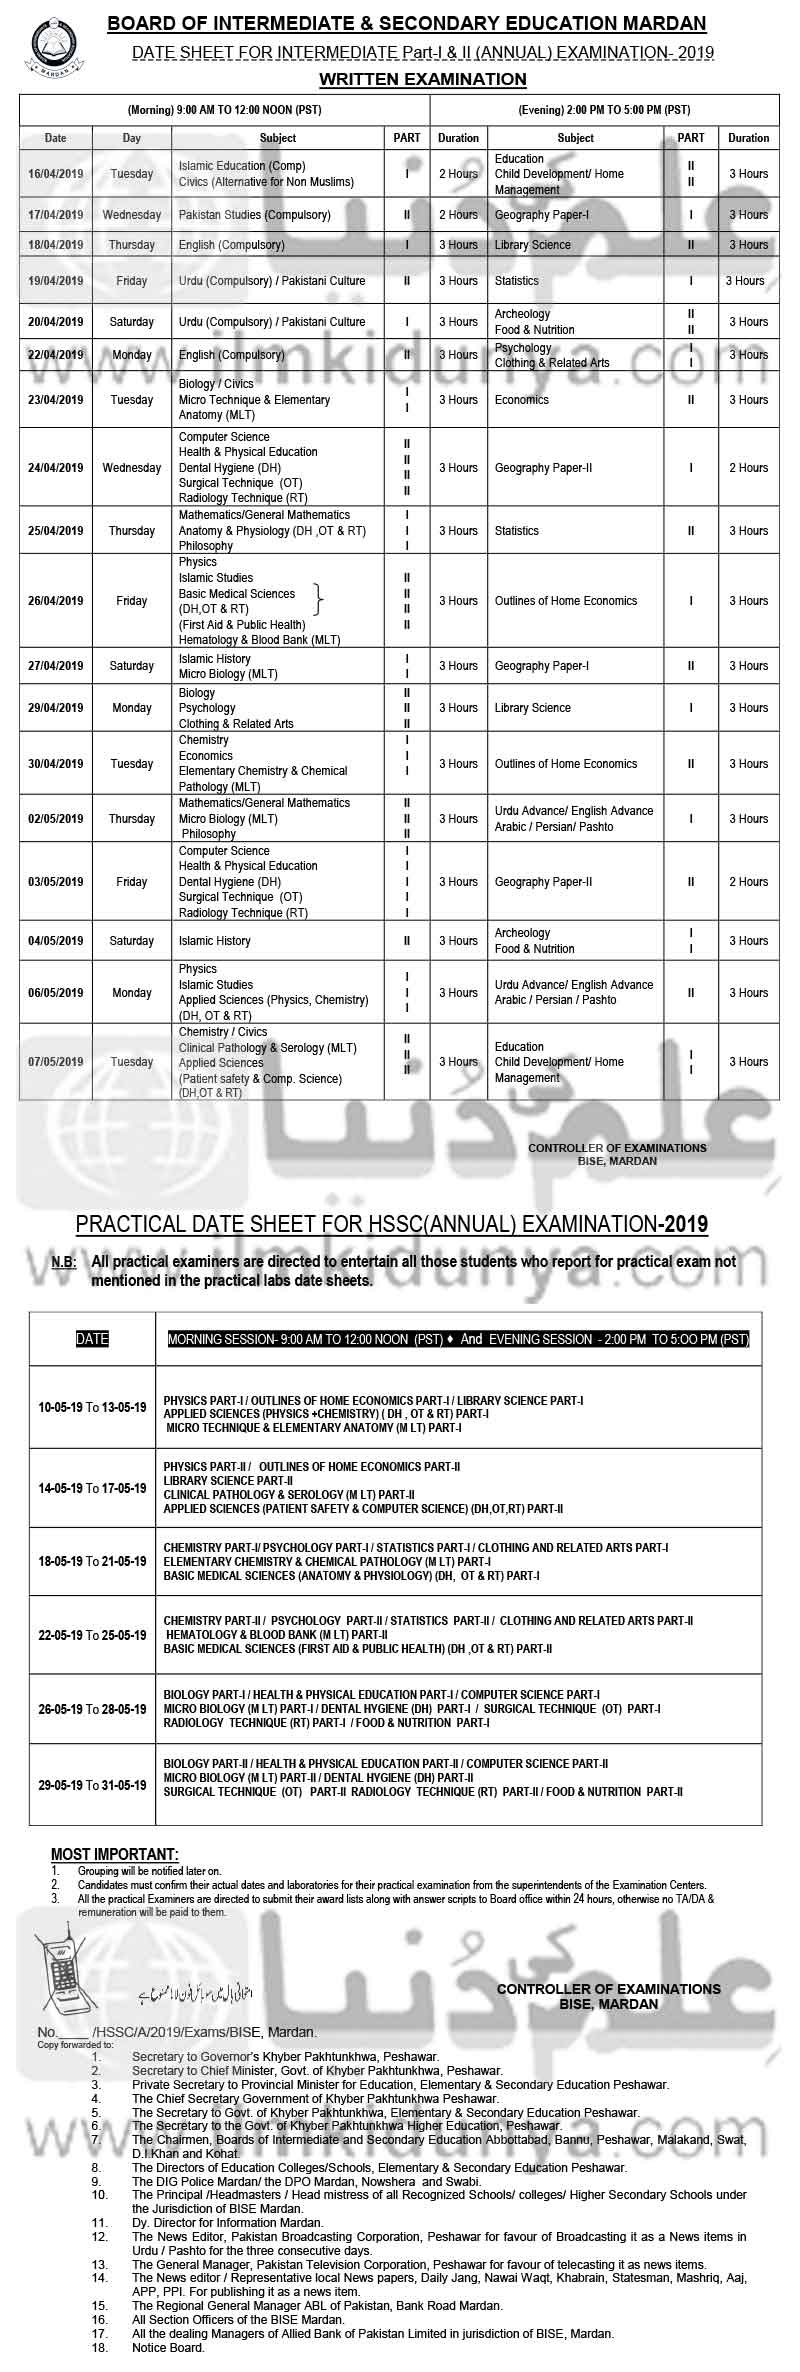 BISE Mardan Board FA FSc Date Sheet 2019 Part 1, 2